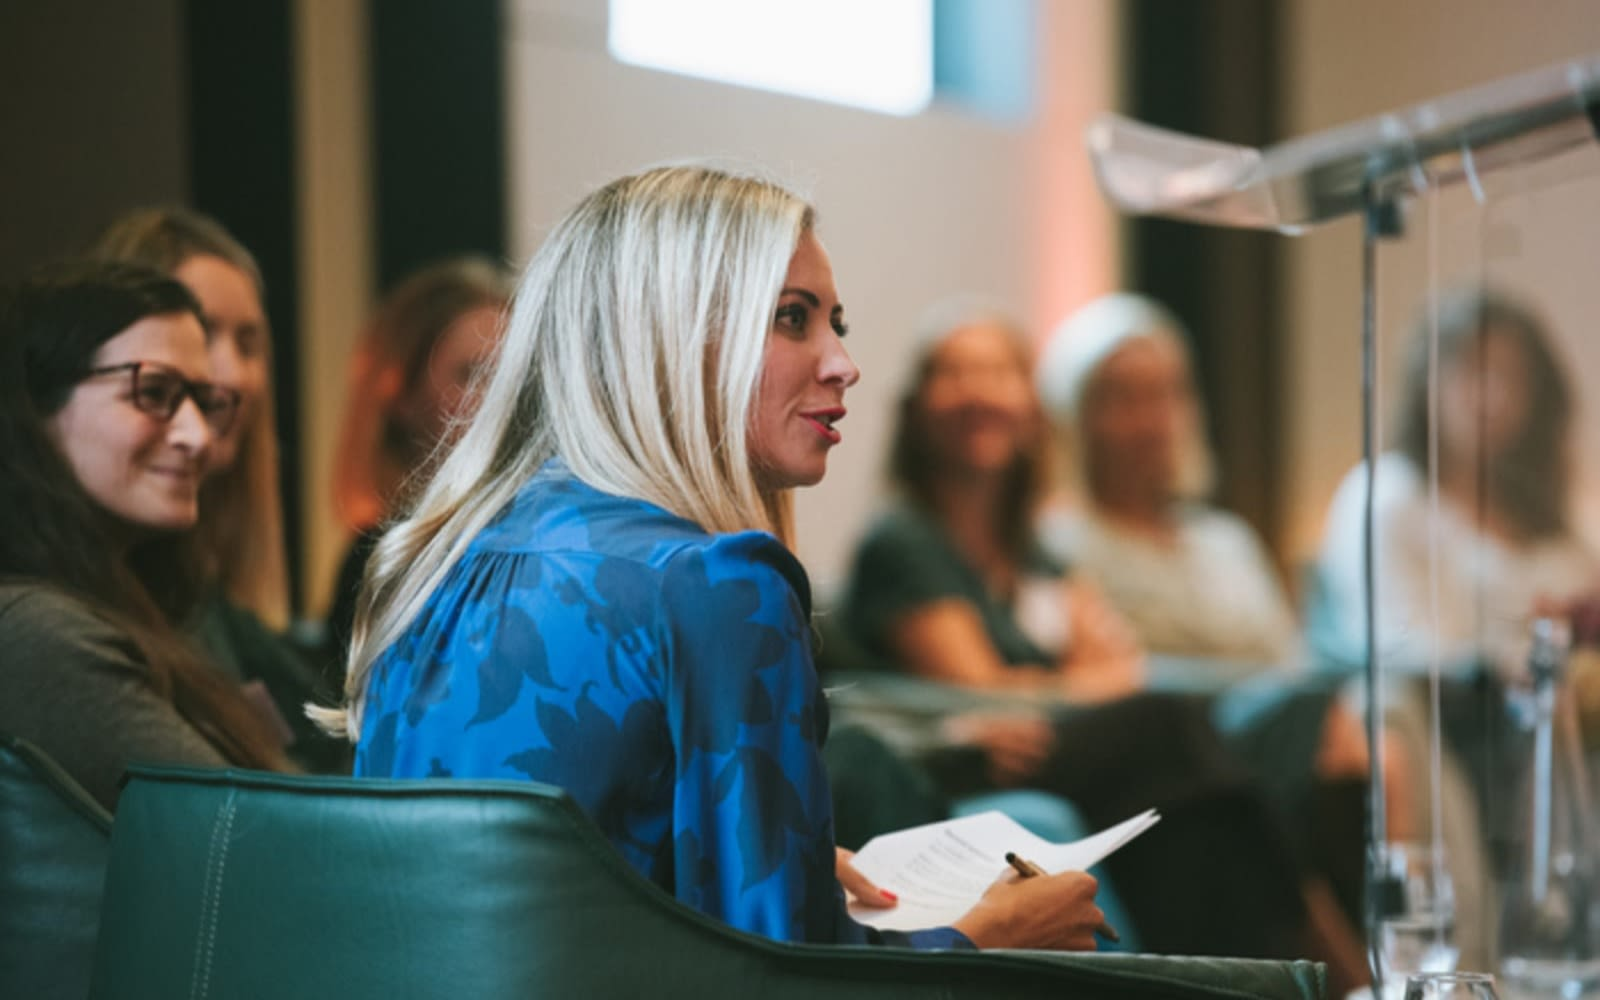 Holly Branson listens during a panel on female entrepreneurship